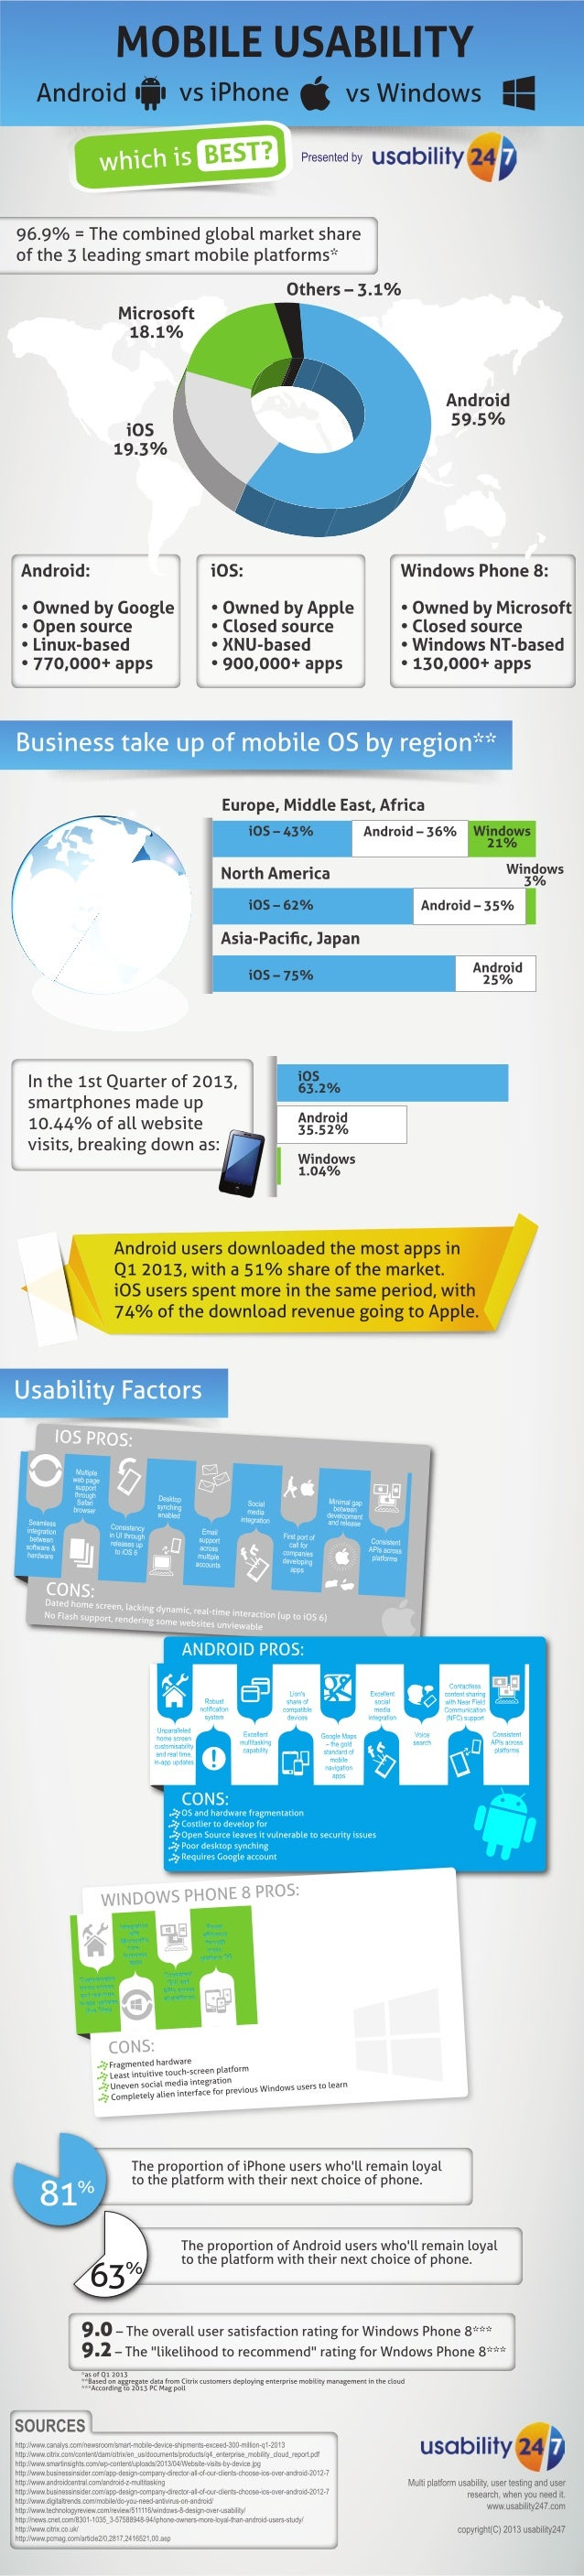 Smartphone usability android vs iphone vs windows